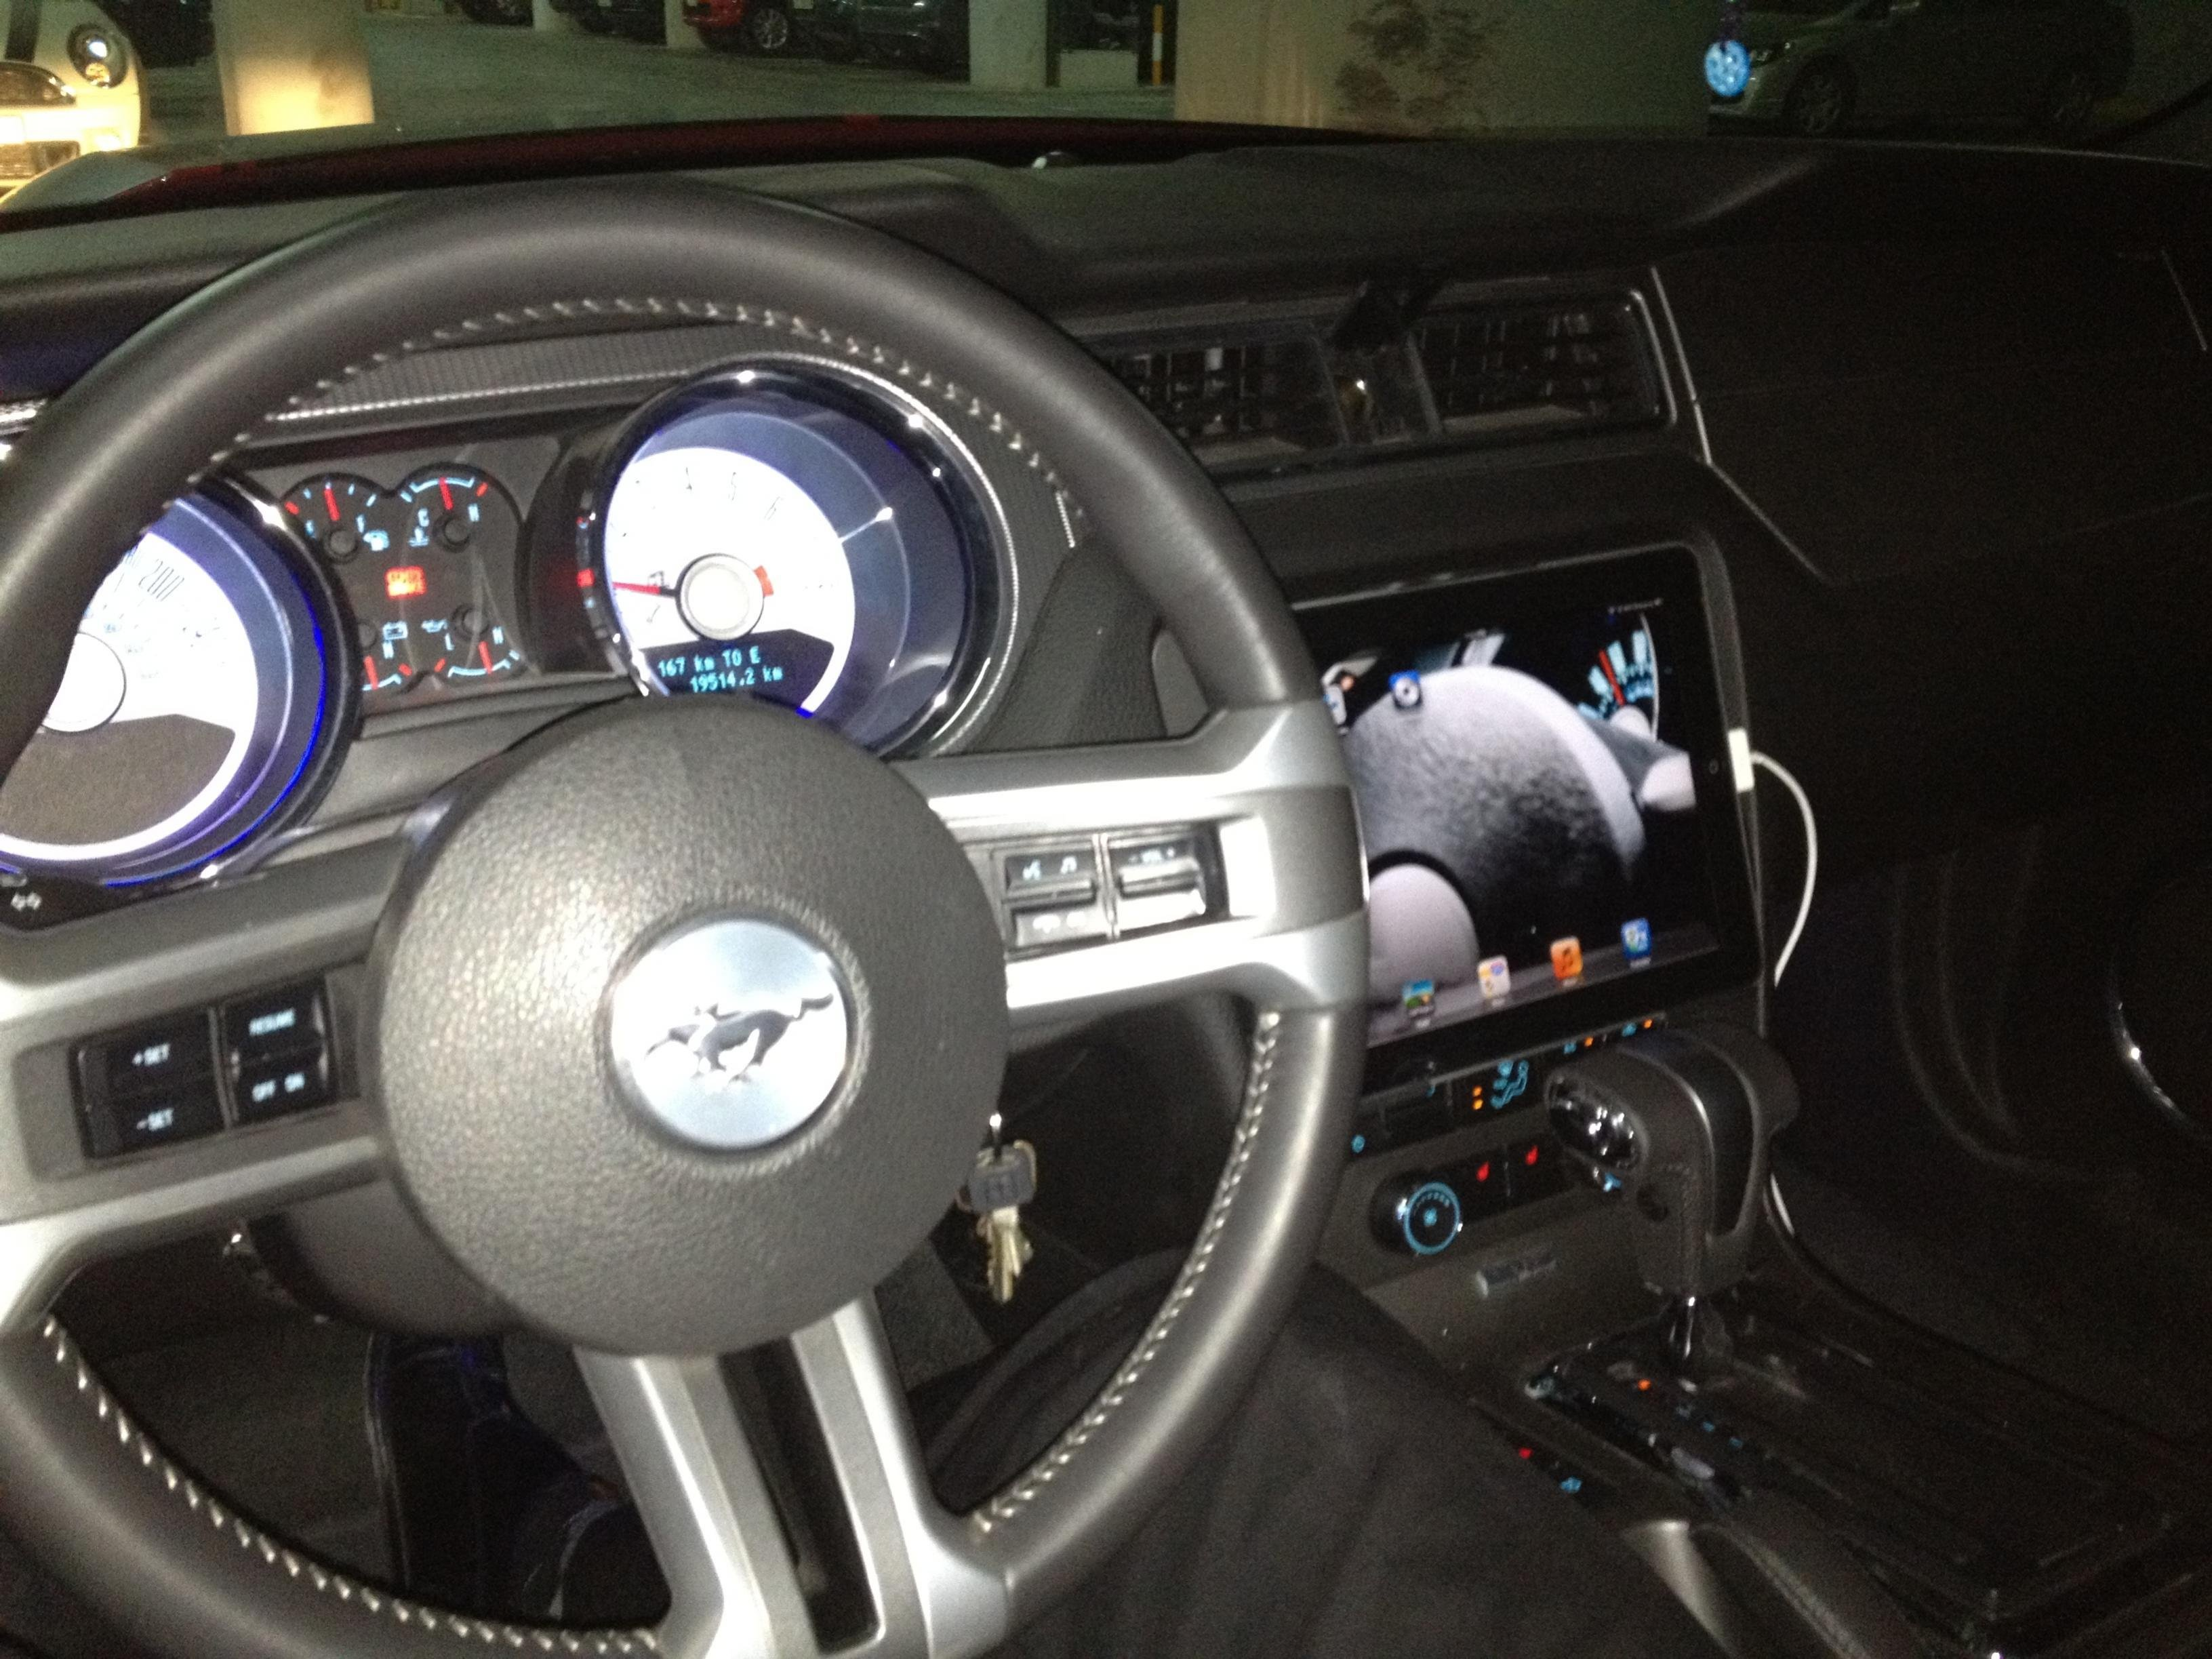 Carbon Fiber Interior Trim Kit - Poll - Page 5 - Ford Mustang Forum